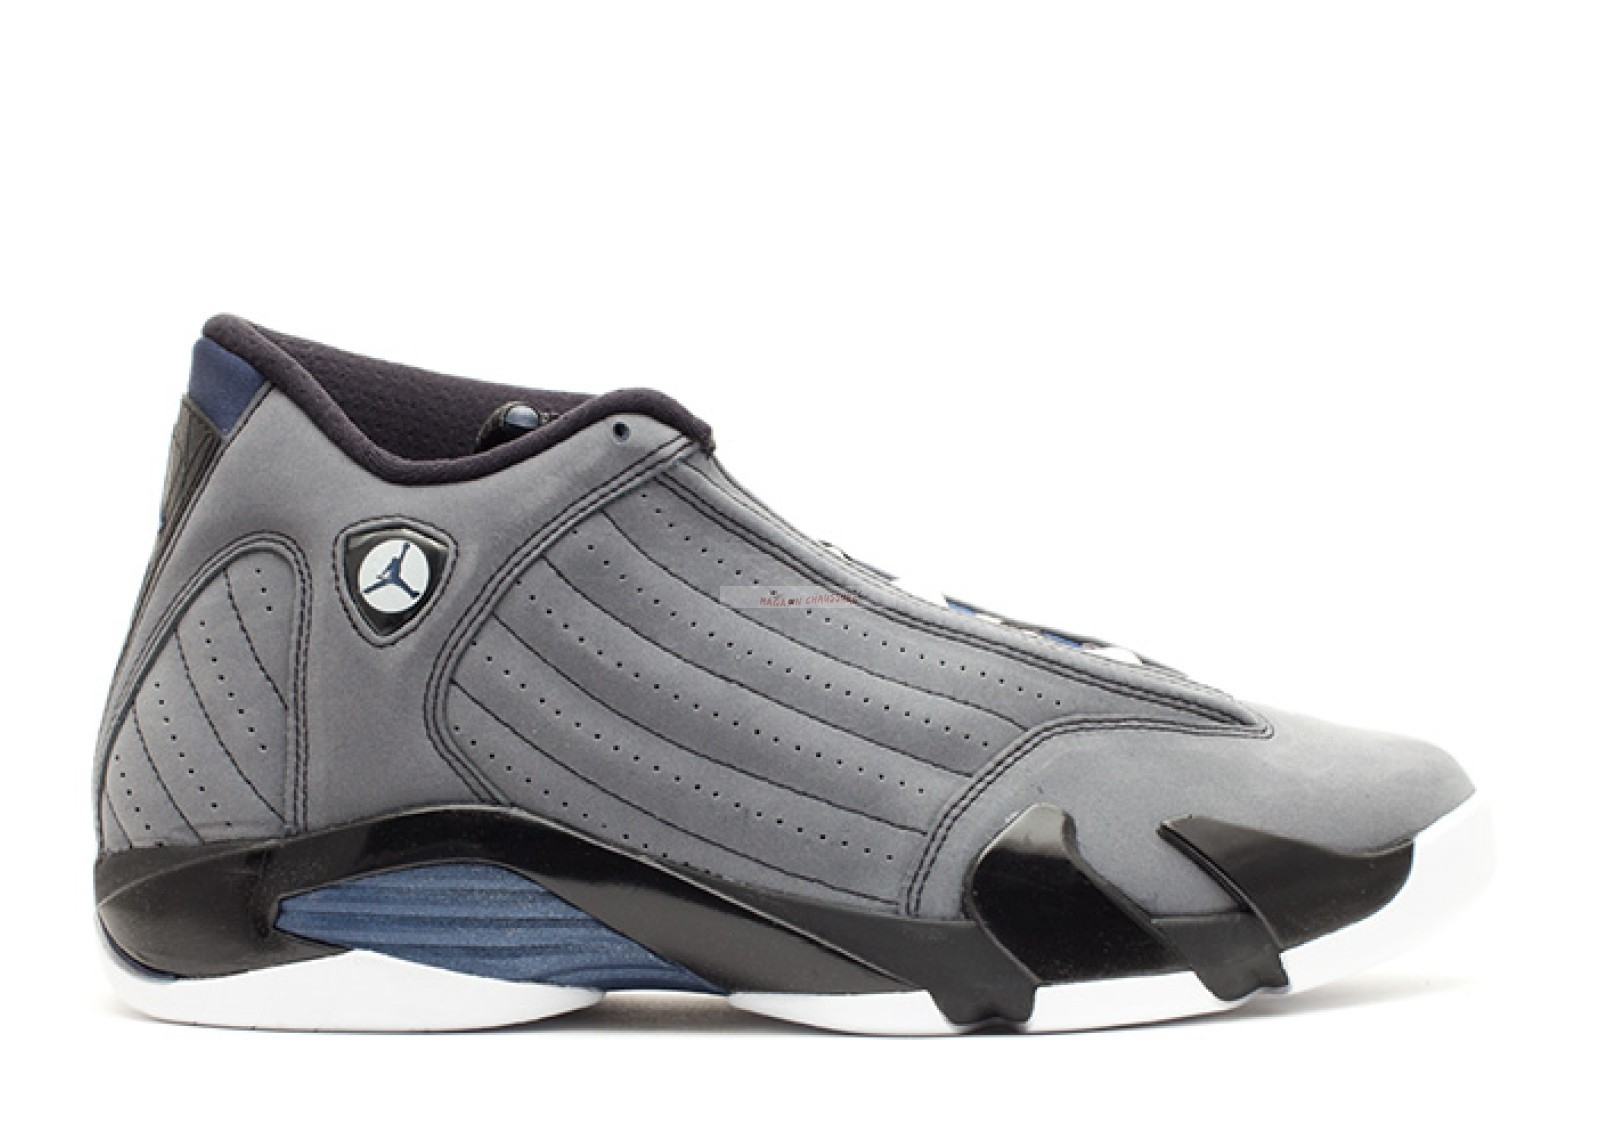 Air Jordan 14 Retro Gris (311832-011) Chaussure de Basket